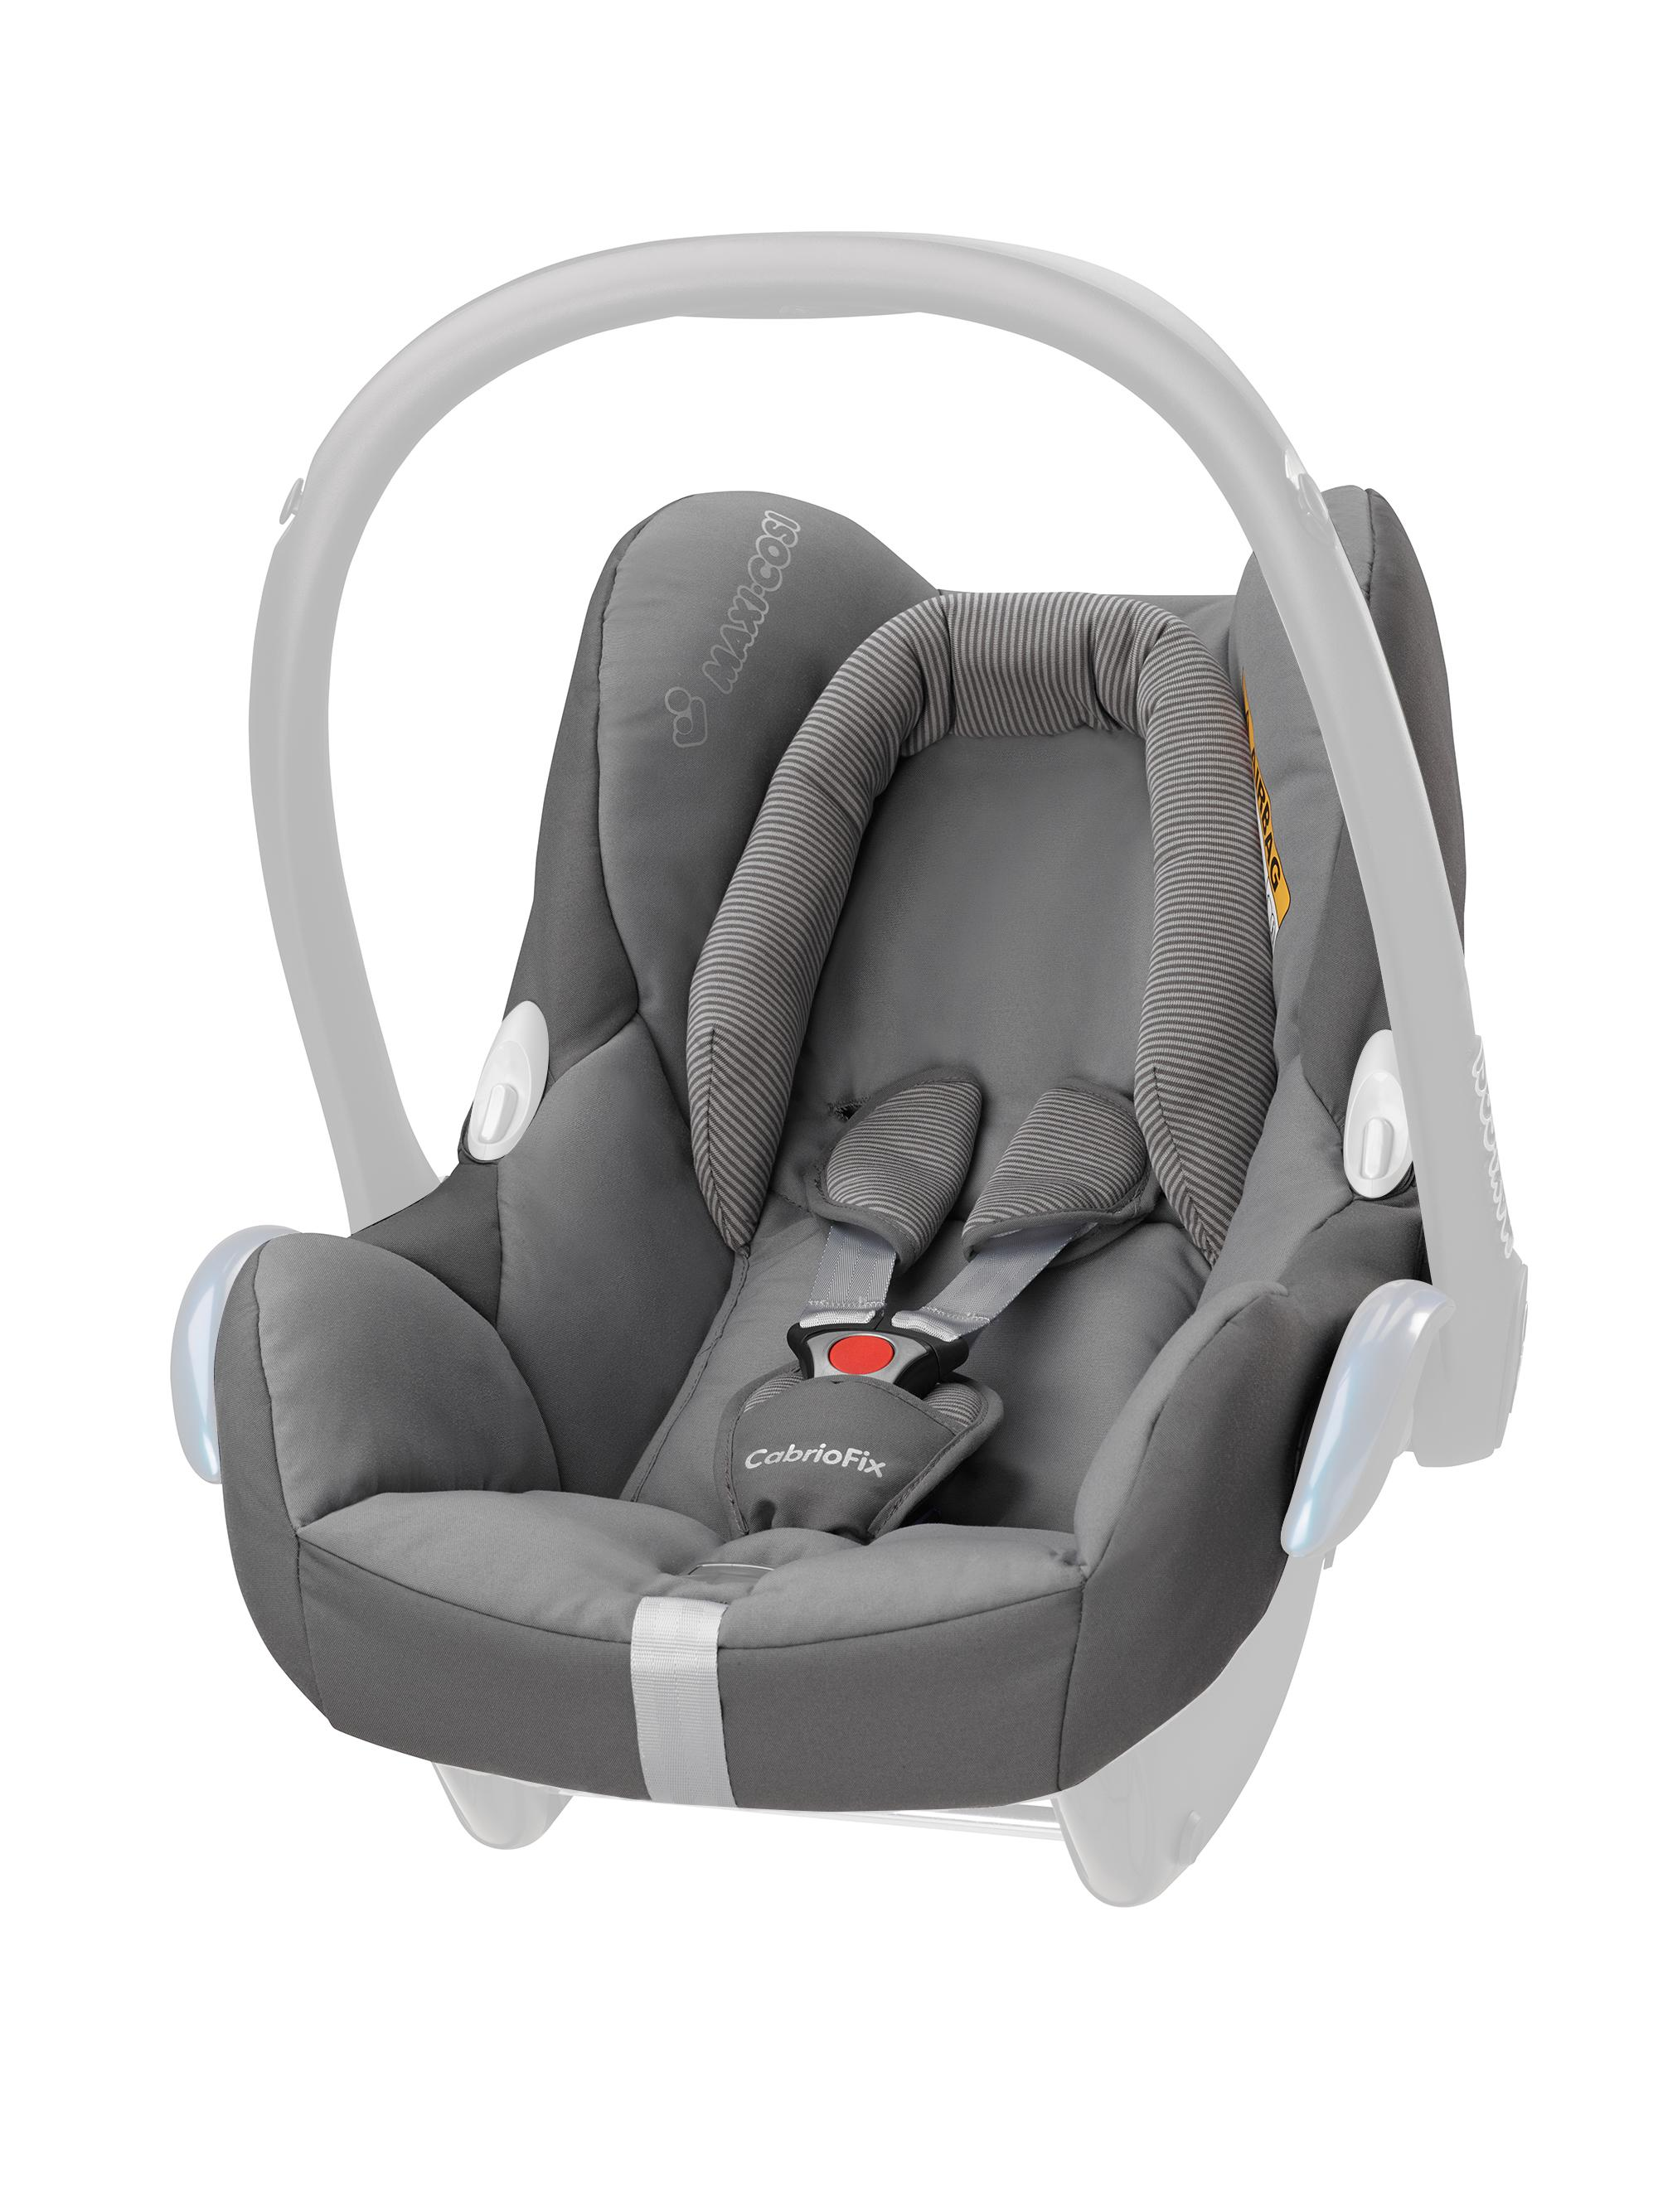 Maxi Cosi Cabriofix Car Seat Cover Replacement